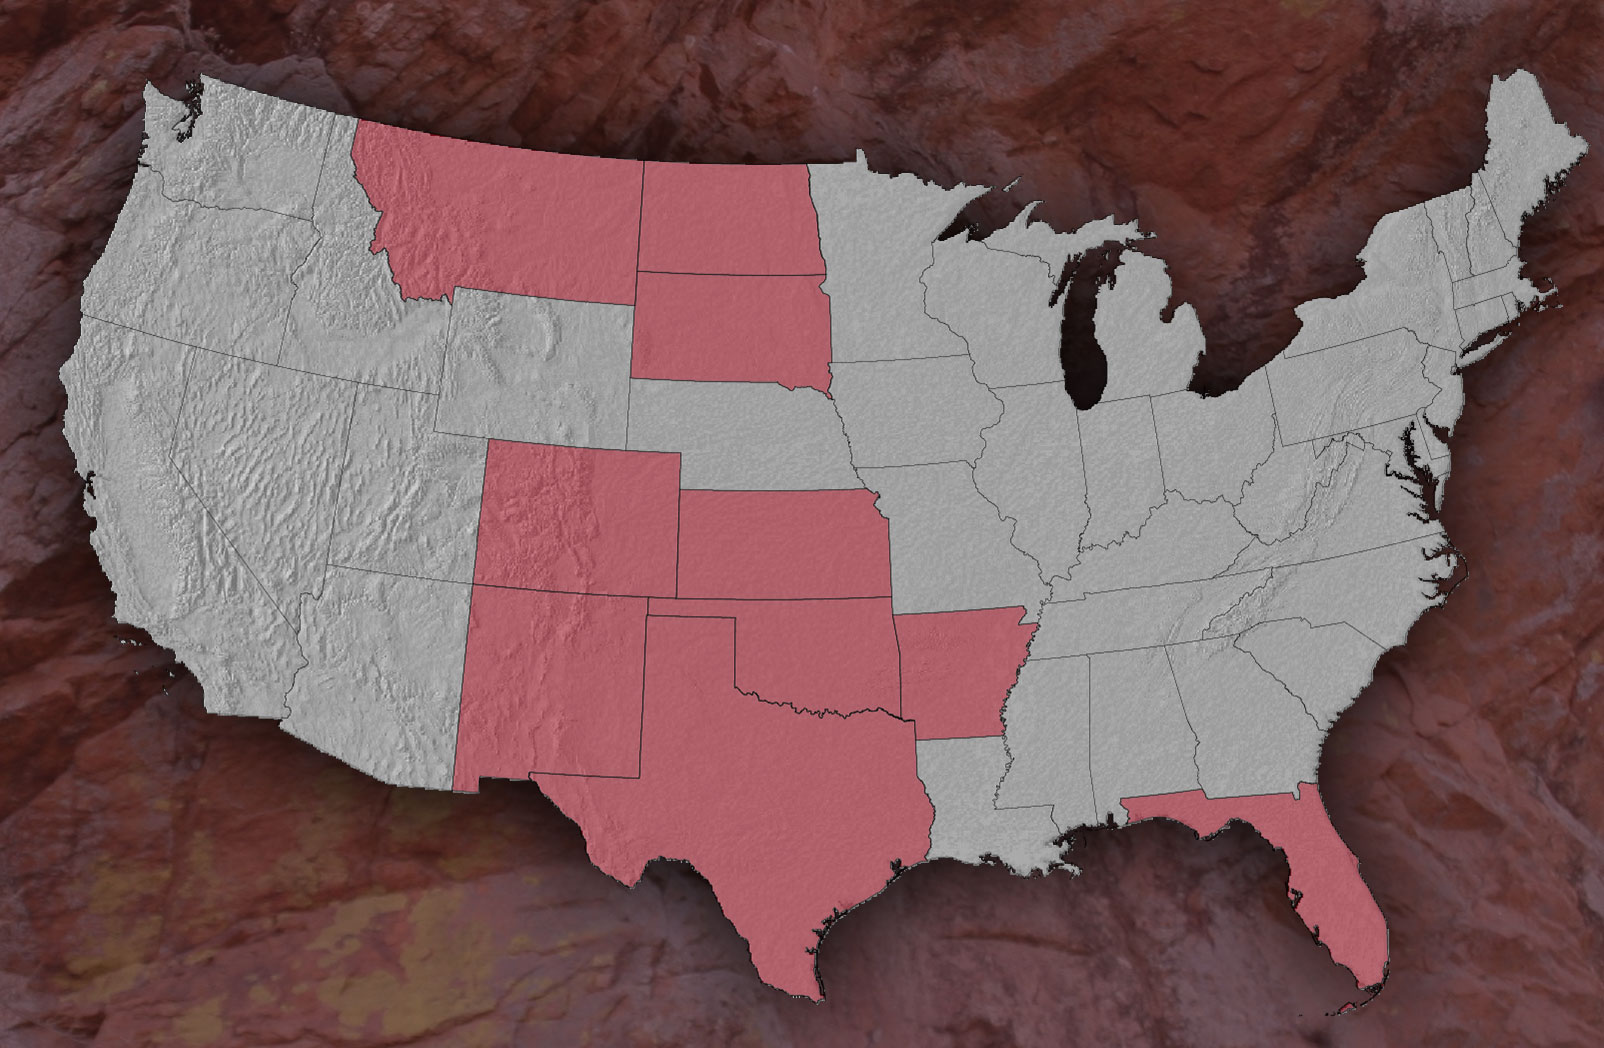 View of the USA Map with all the States highlighted that Panhandle has minerals assets in.